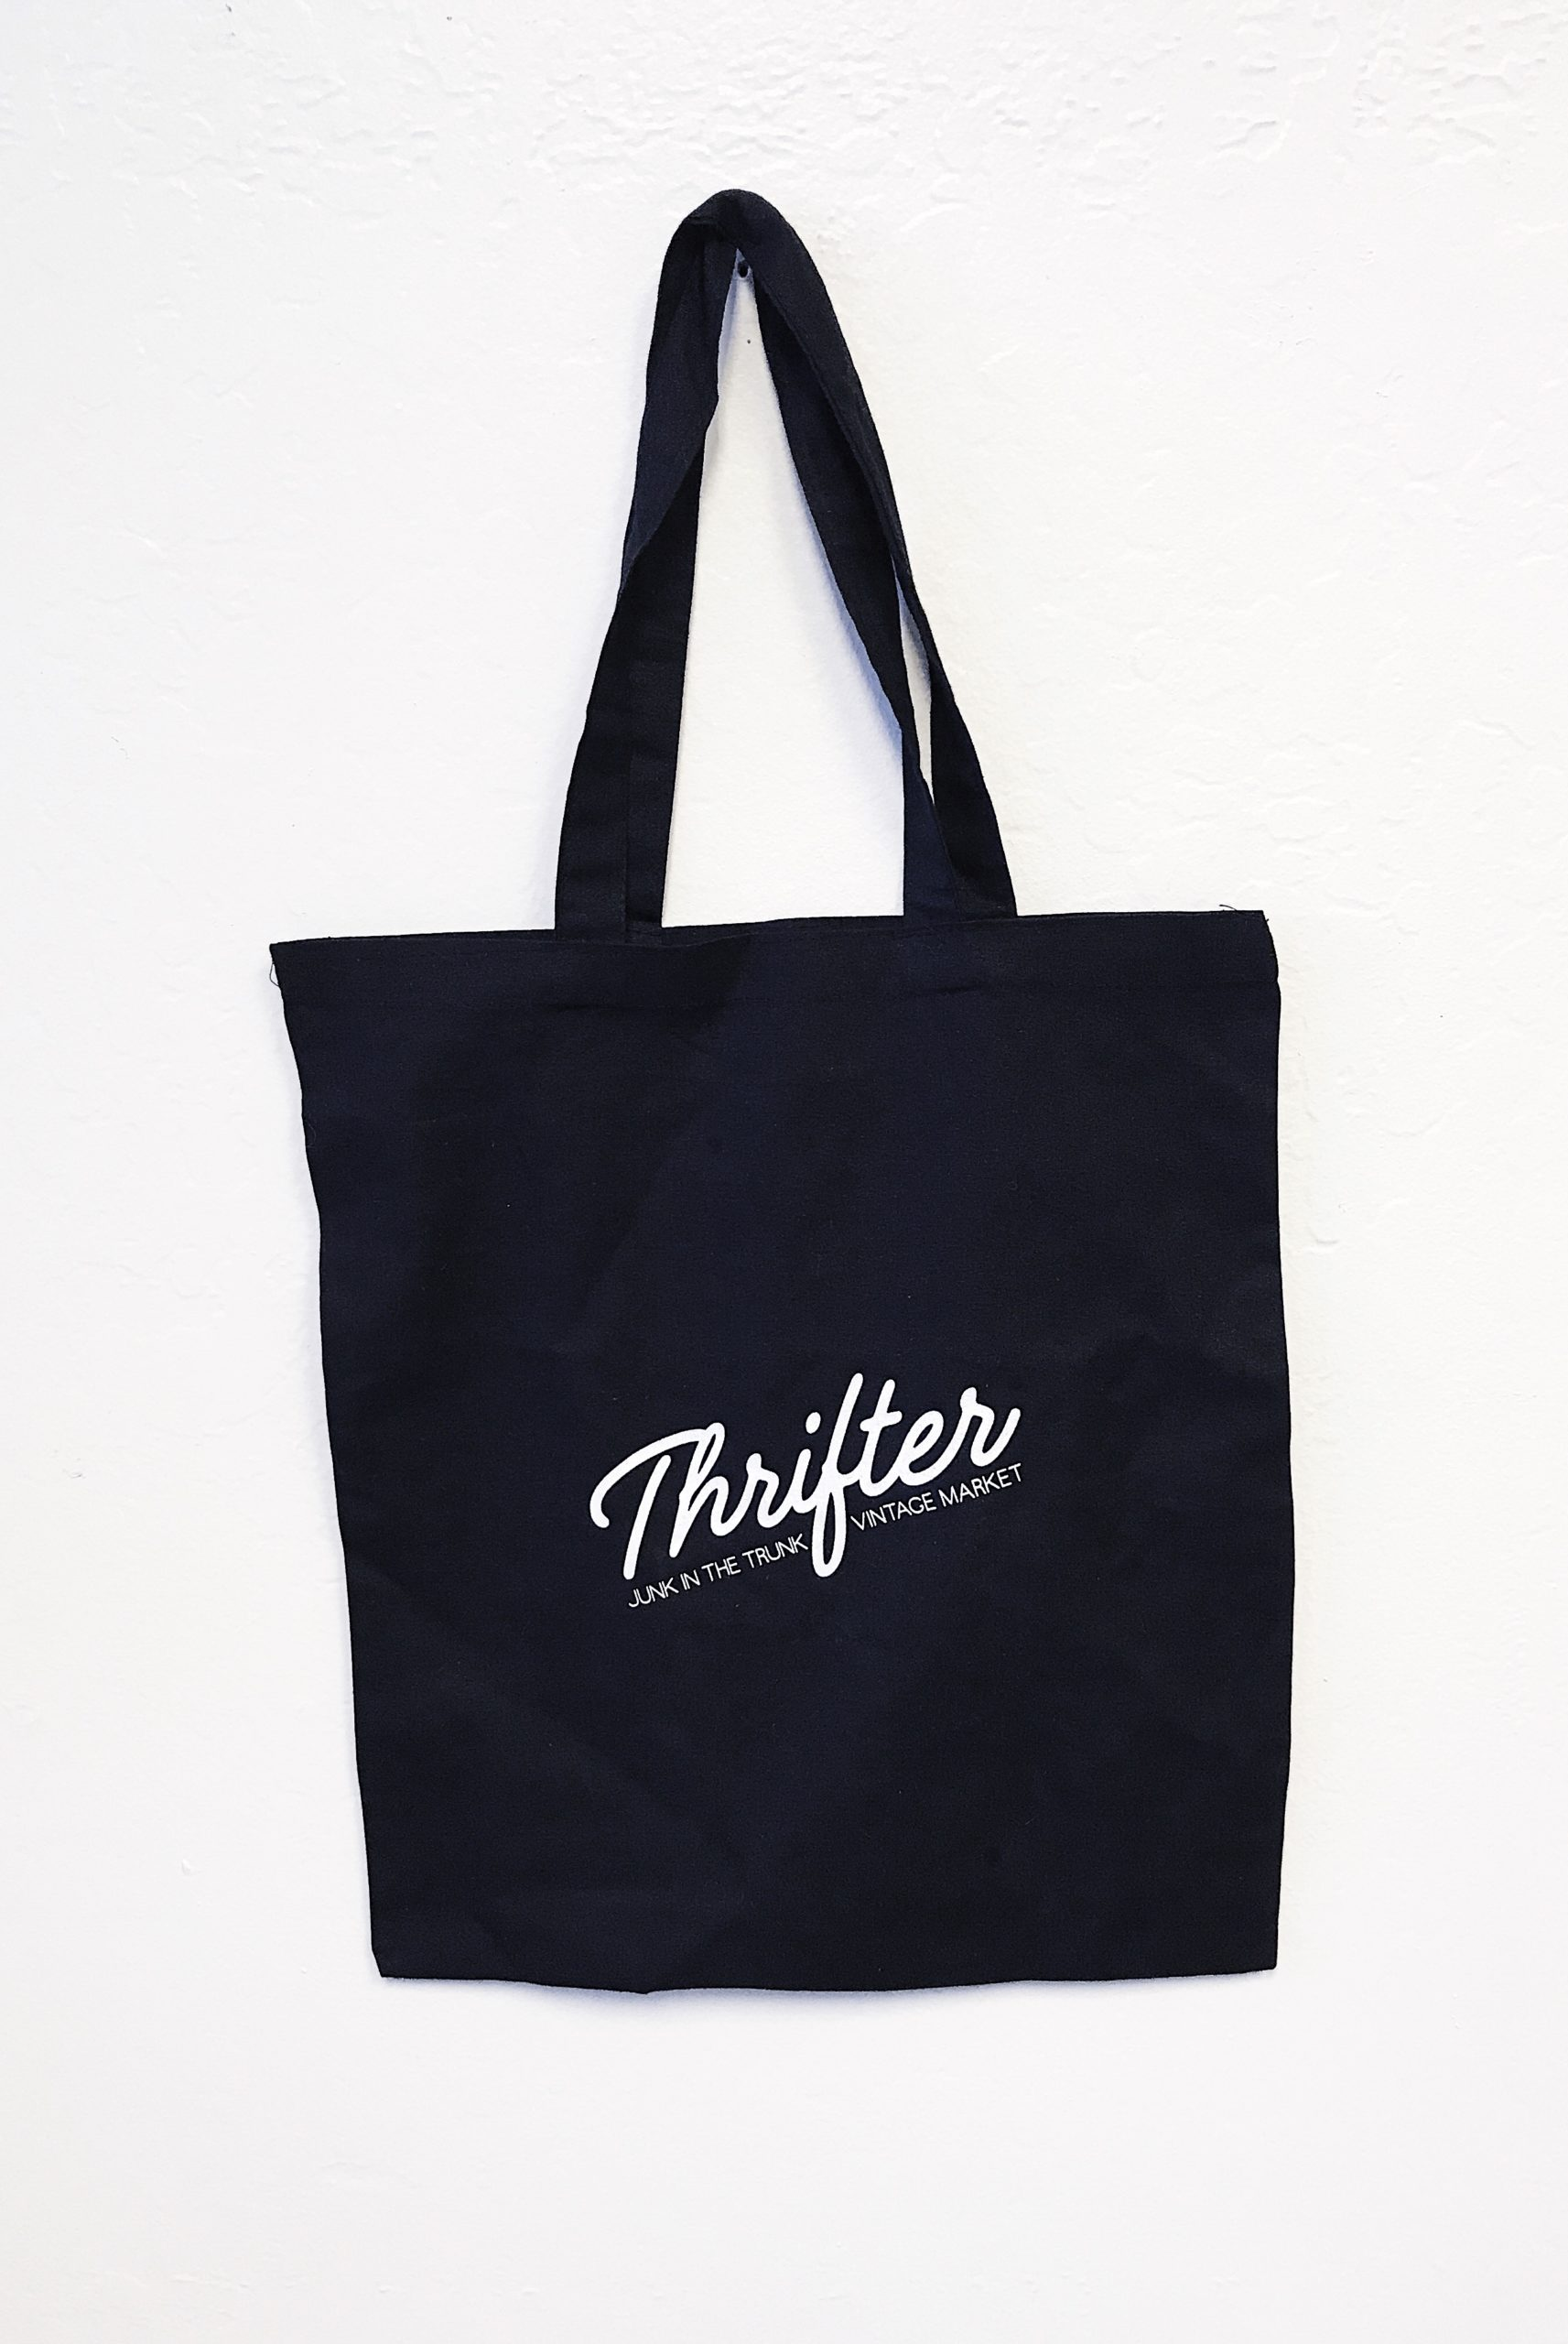 Black Canvas Thrifter Bag – Vintage Market Home